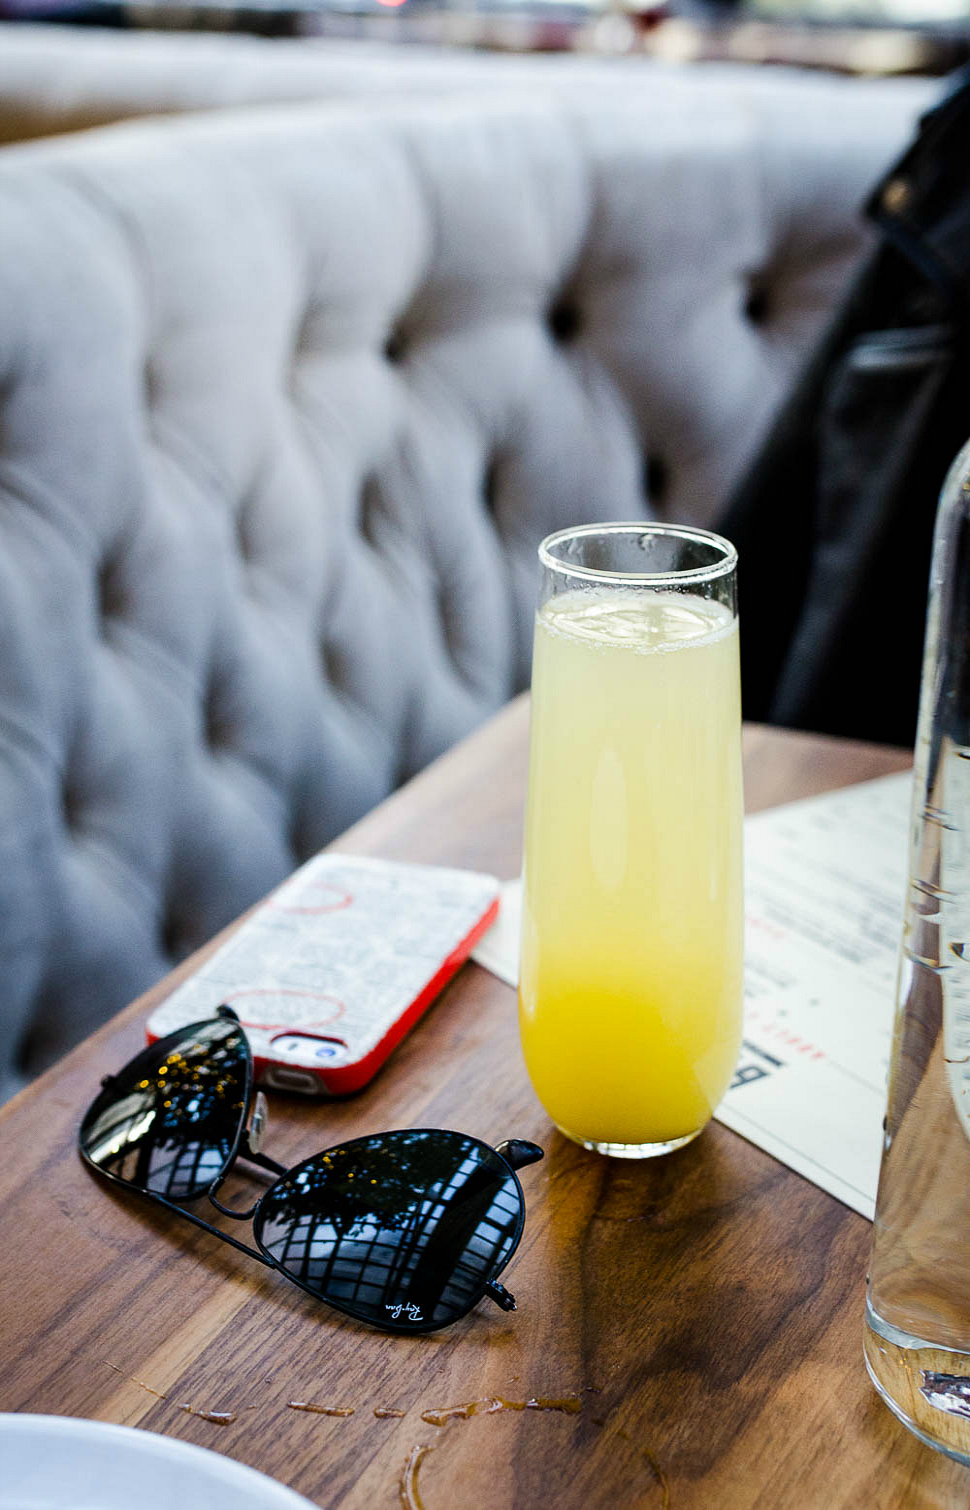 Townhouse-detroit-rosecitystyeguide-city-guide-brunch-mimosa-ray-ban-aviators